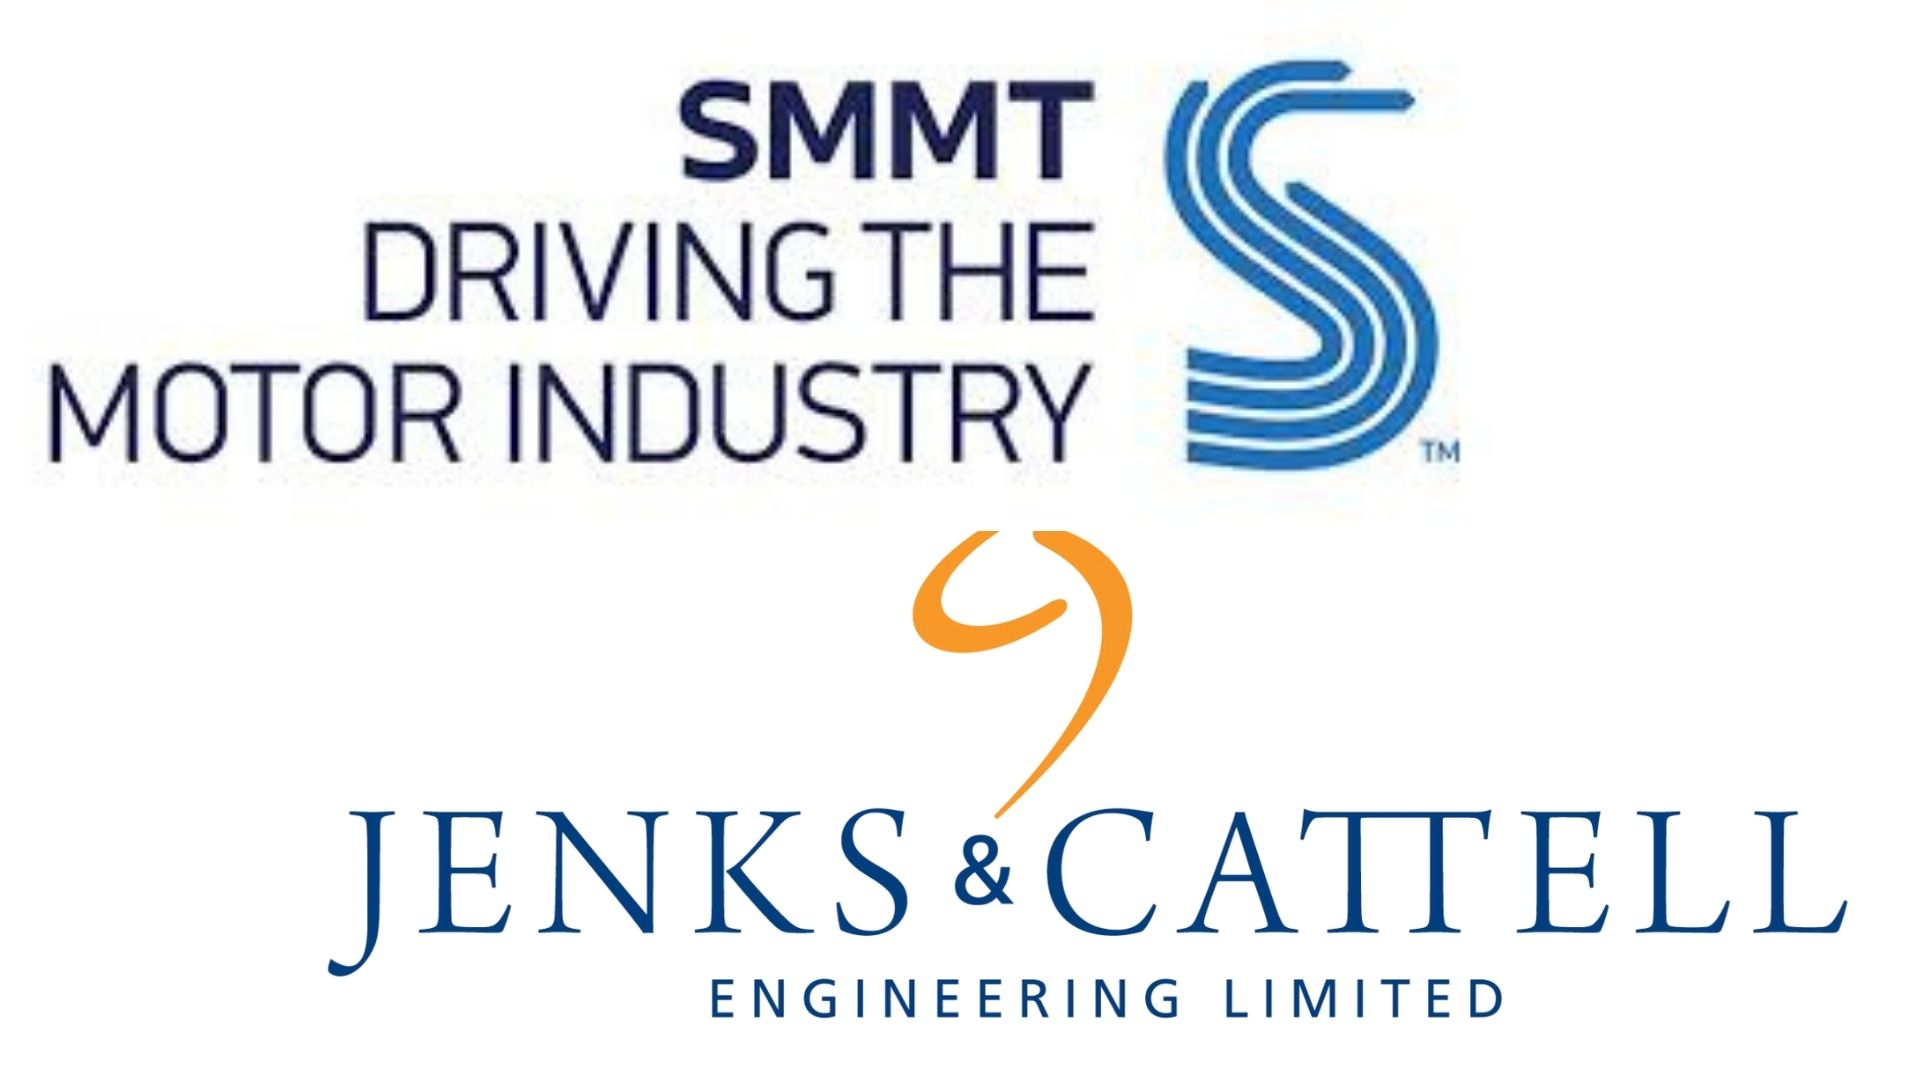 Jenks & Cattell Automotive Manufacturing Focus With SMMT